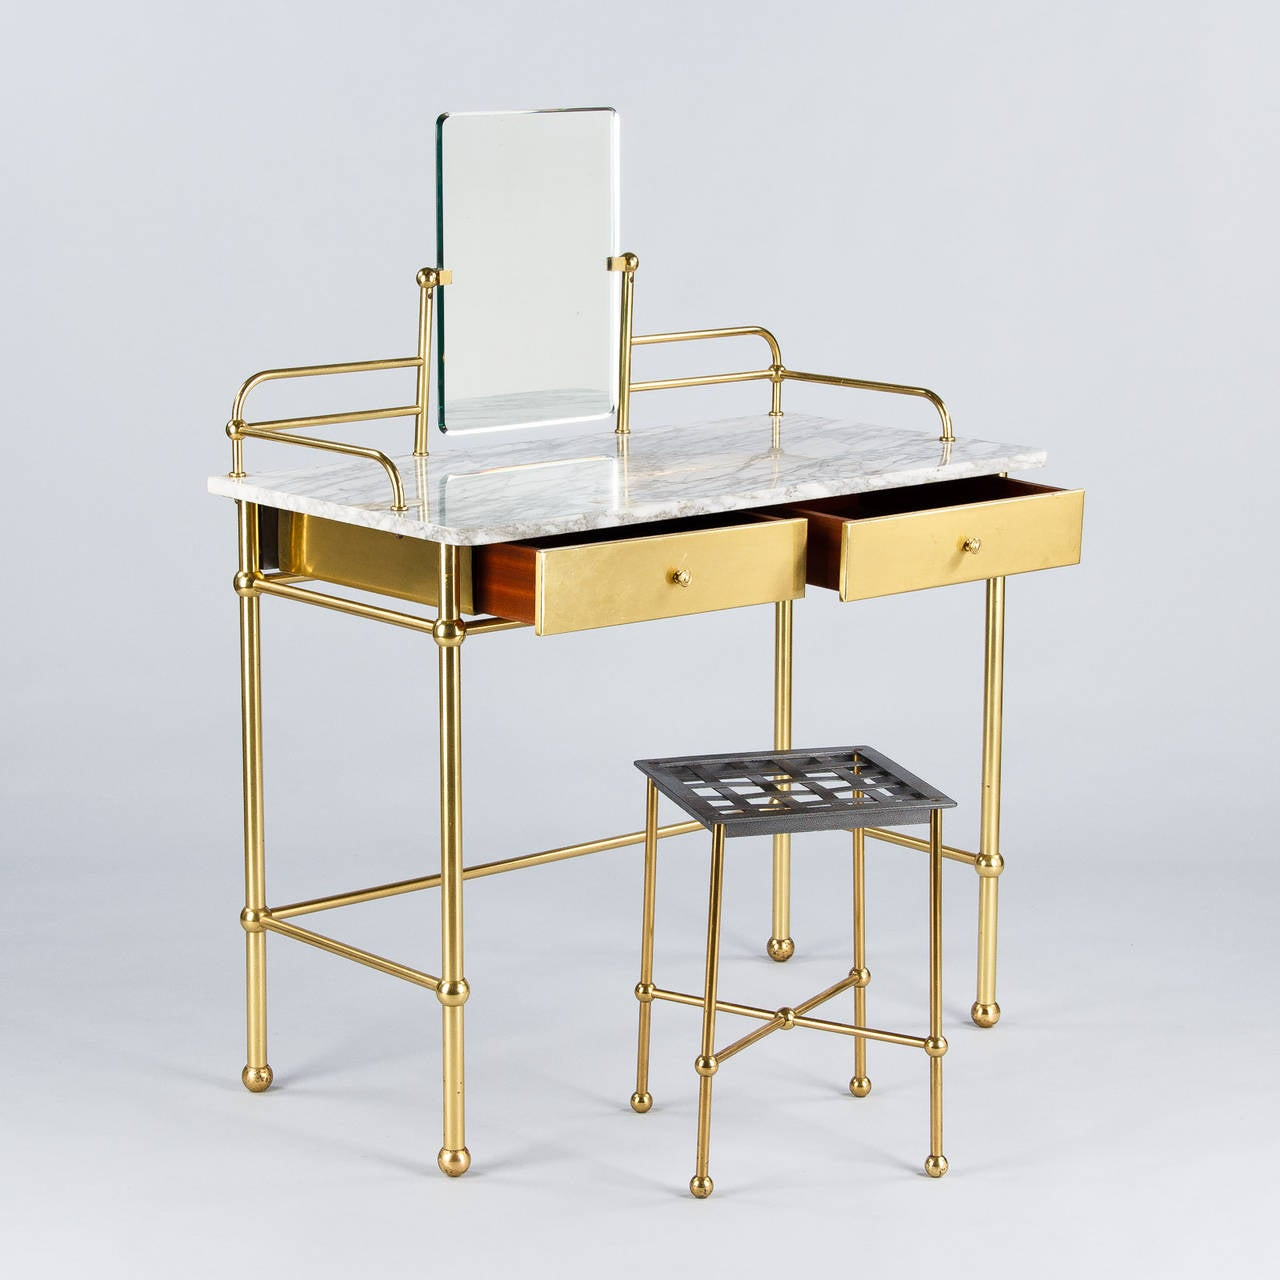 Vintage french brass and marble vanity table with stool by resistub 1960s at 1stdibs - Stool for vanity table ...